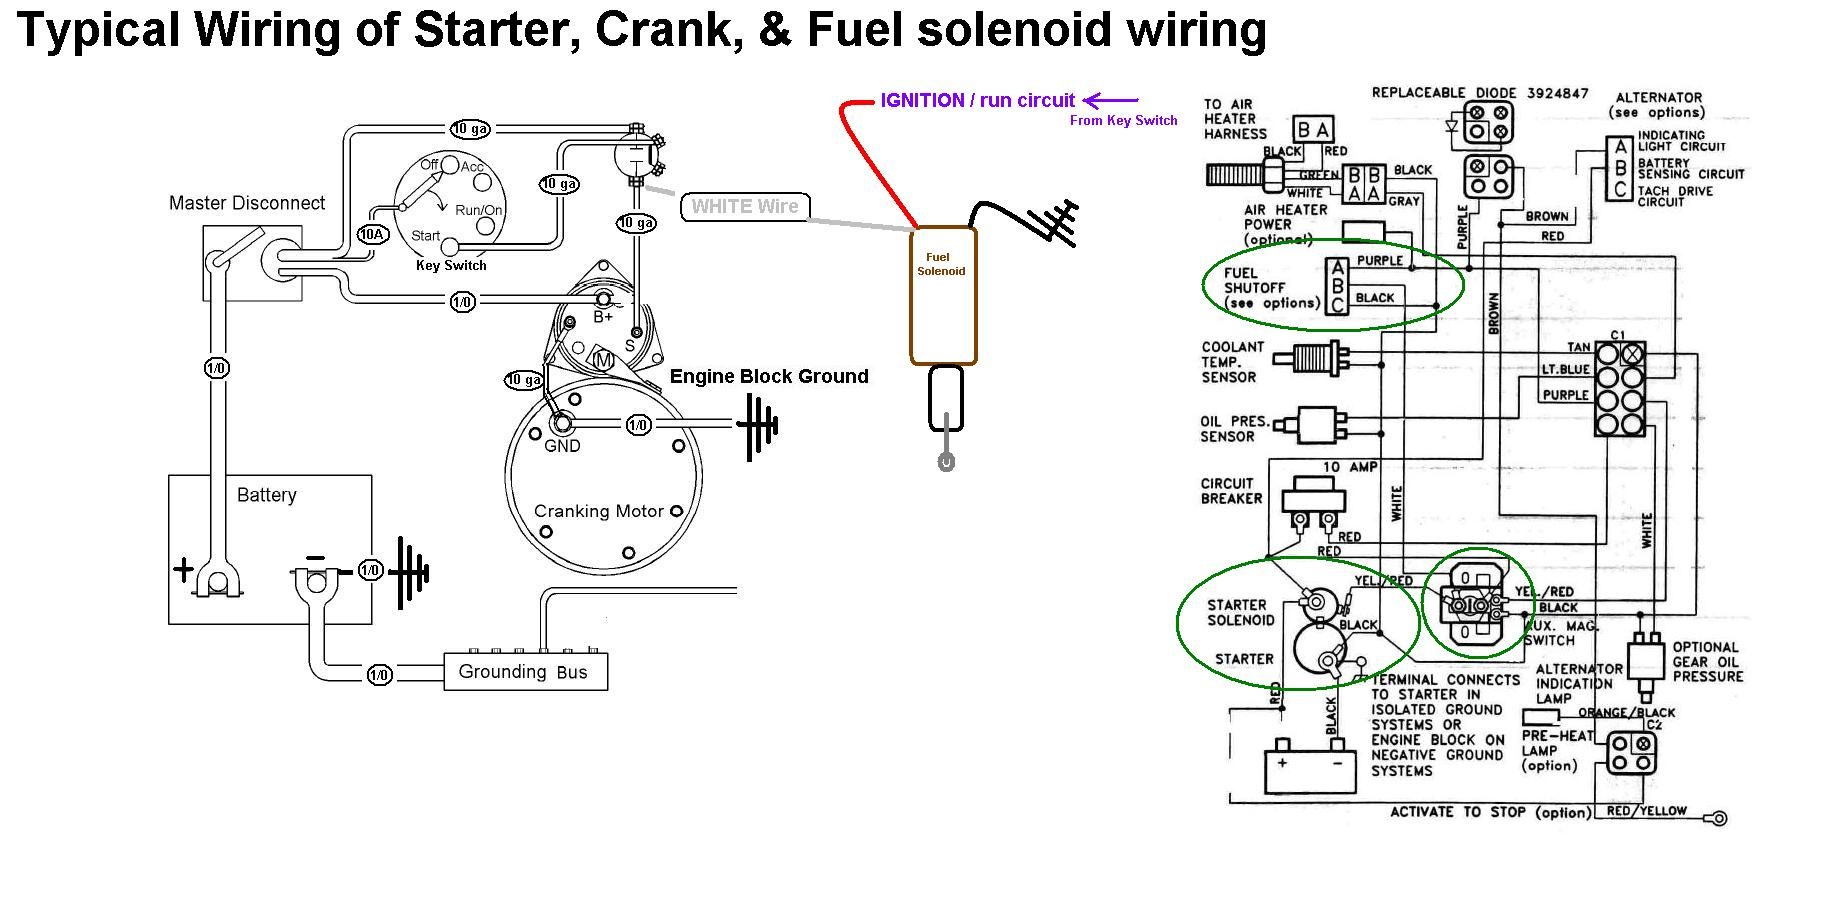 gy6 starter relay wiring orbit ceiling fan diagram crank and fuel shutoff solenoid seaboard